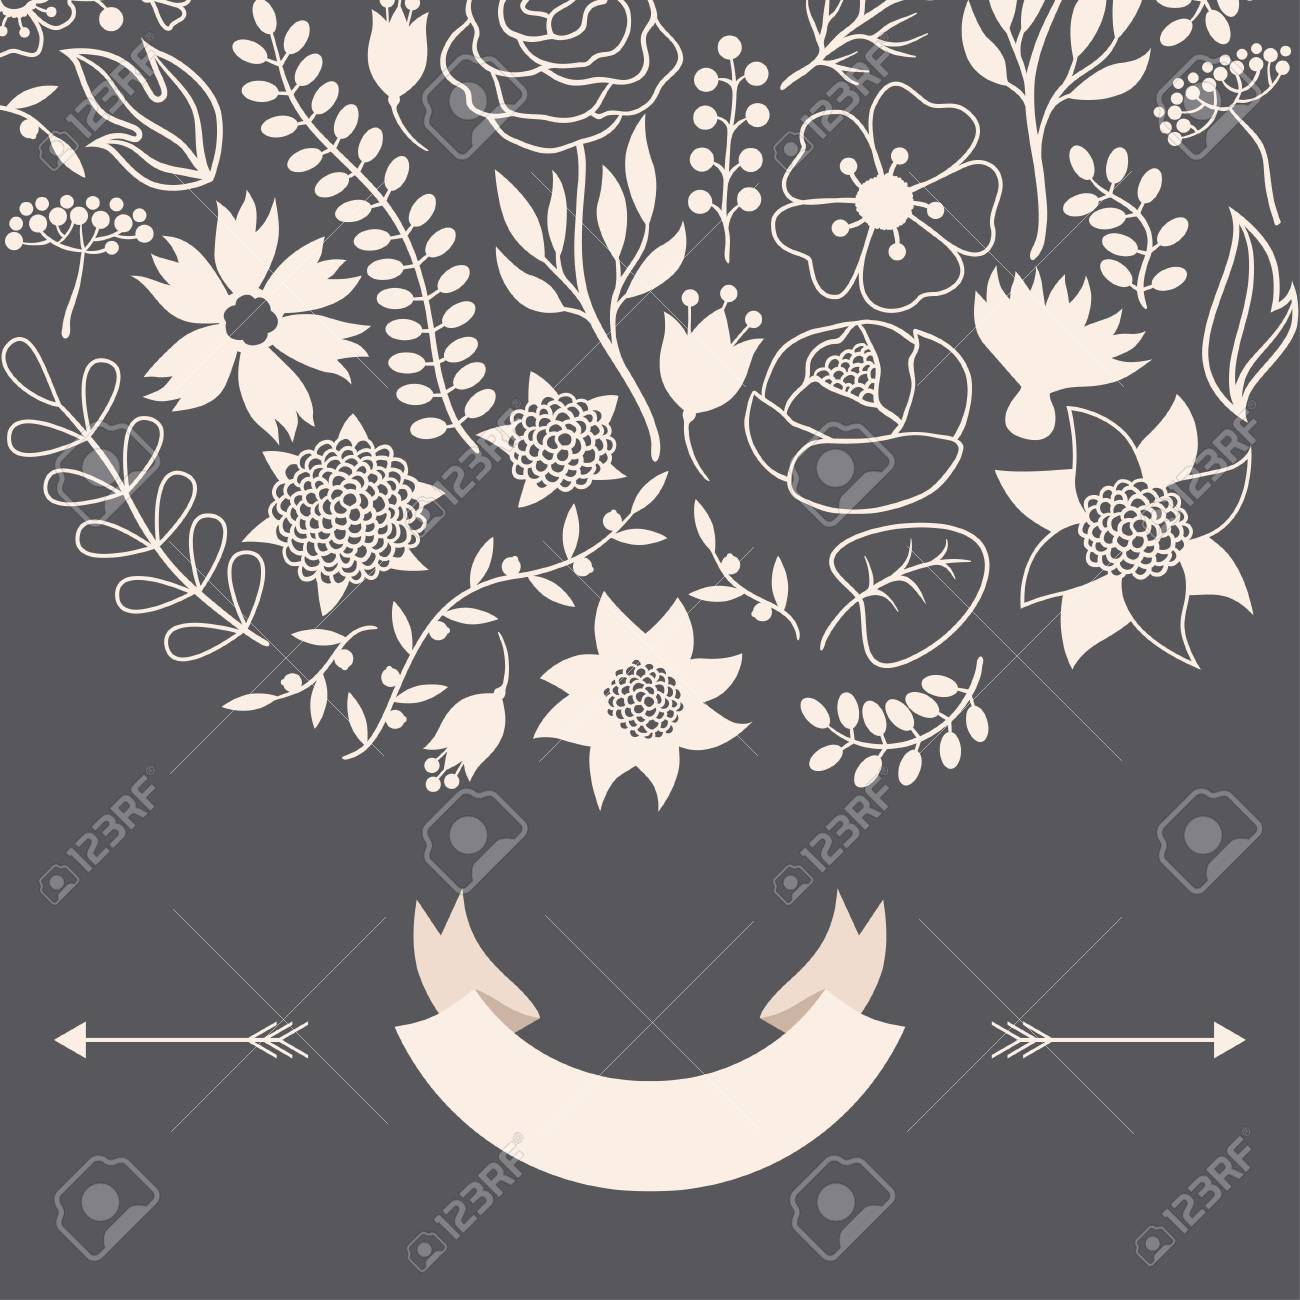 Romantic background of various flowers in retro style. Stock Vector - 24155562